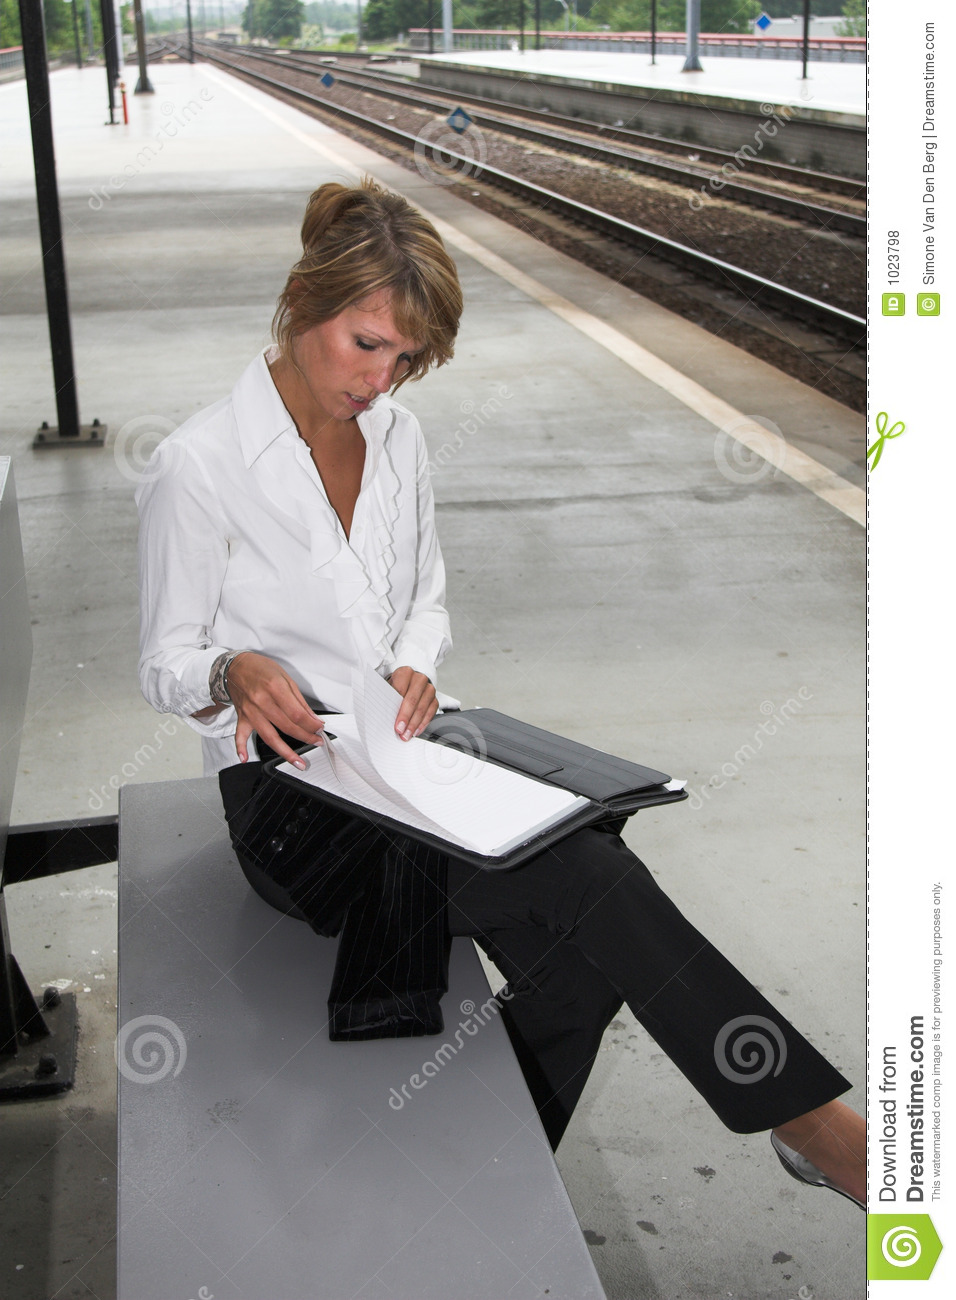 Checking her notes at the trainstation